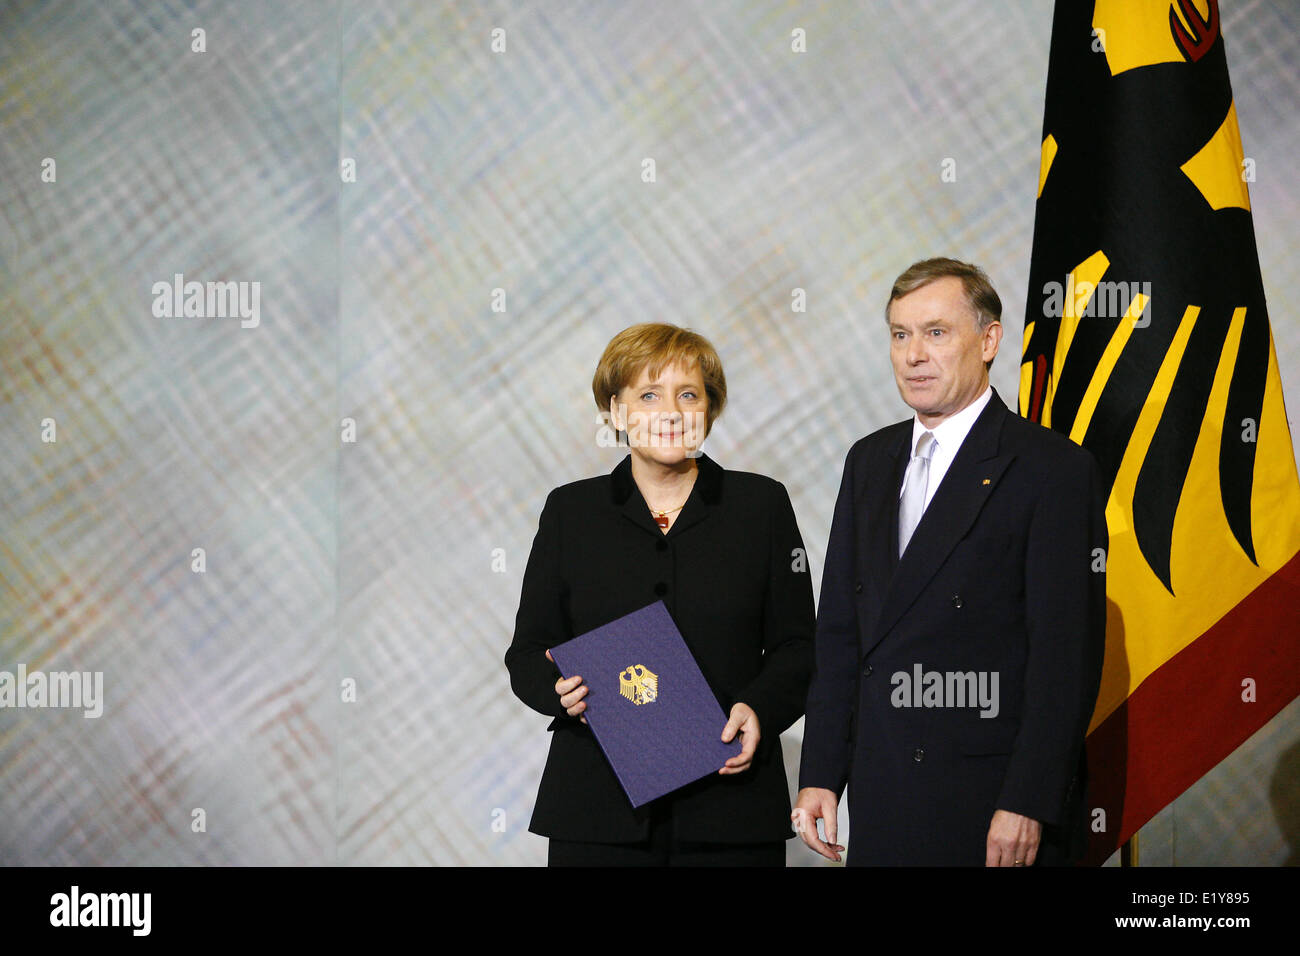 Head of state Horst Köhler (r) hands over the certificate of appointment to Angela Merkel (22.11.2005) who - Stock Image